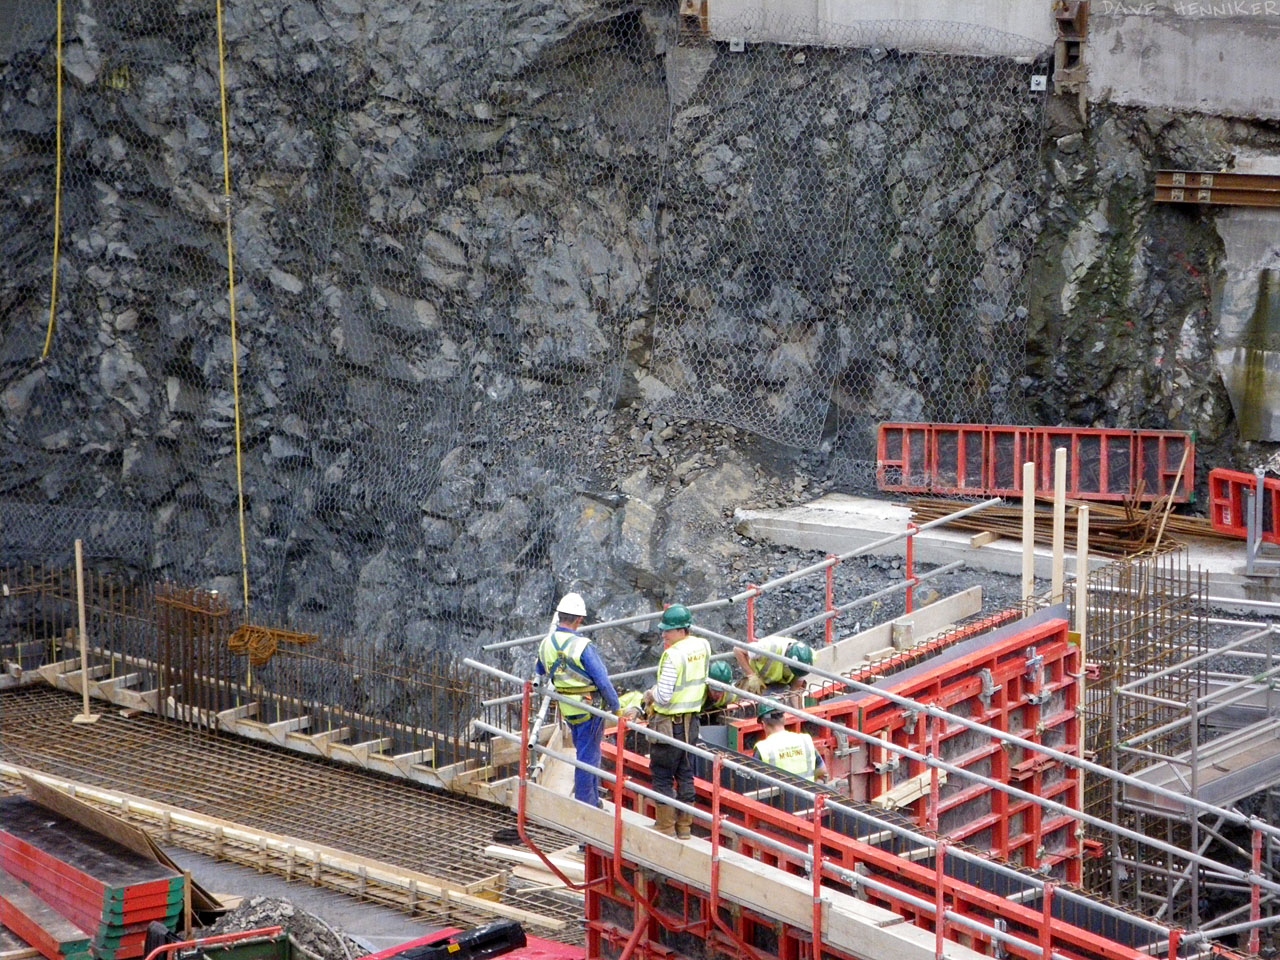 Wire mesh is fastened to the rock face to support any crumbling lumps which might otherwise fall down.